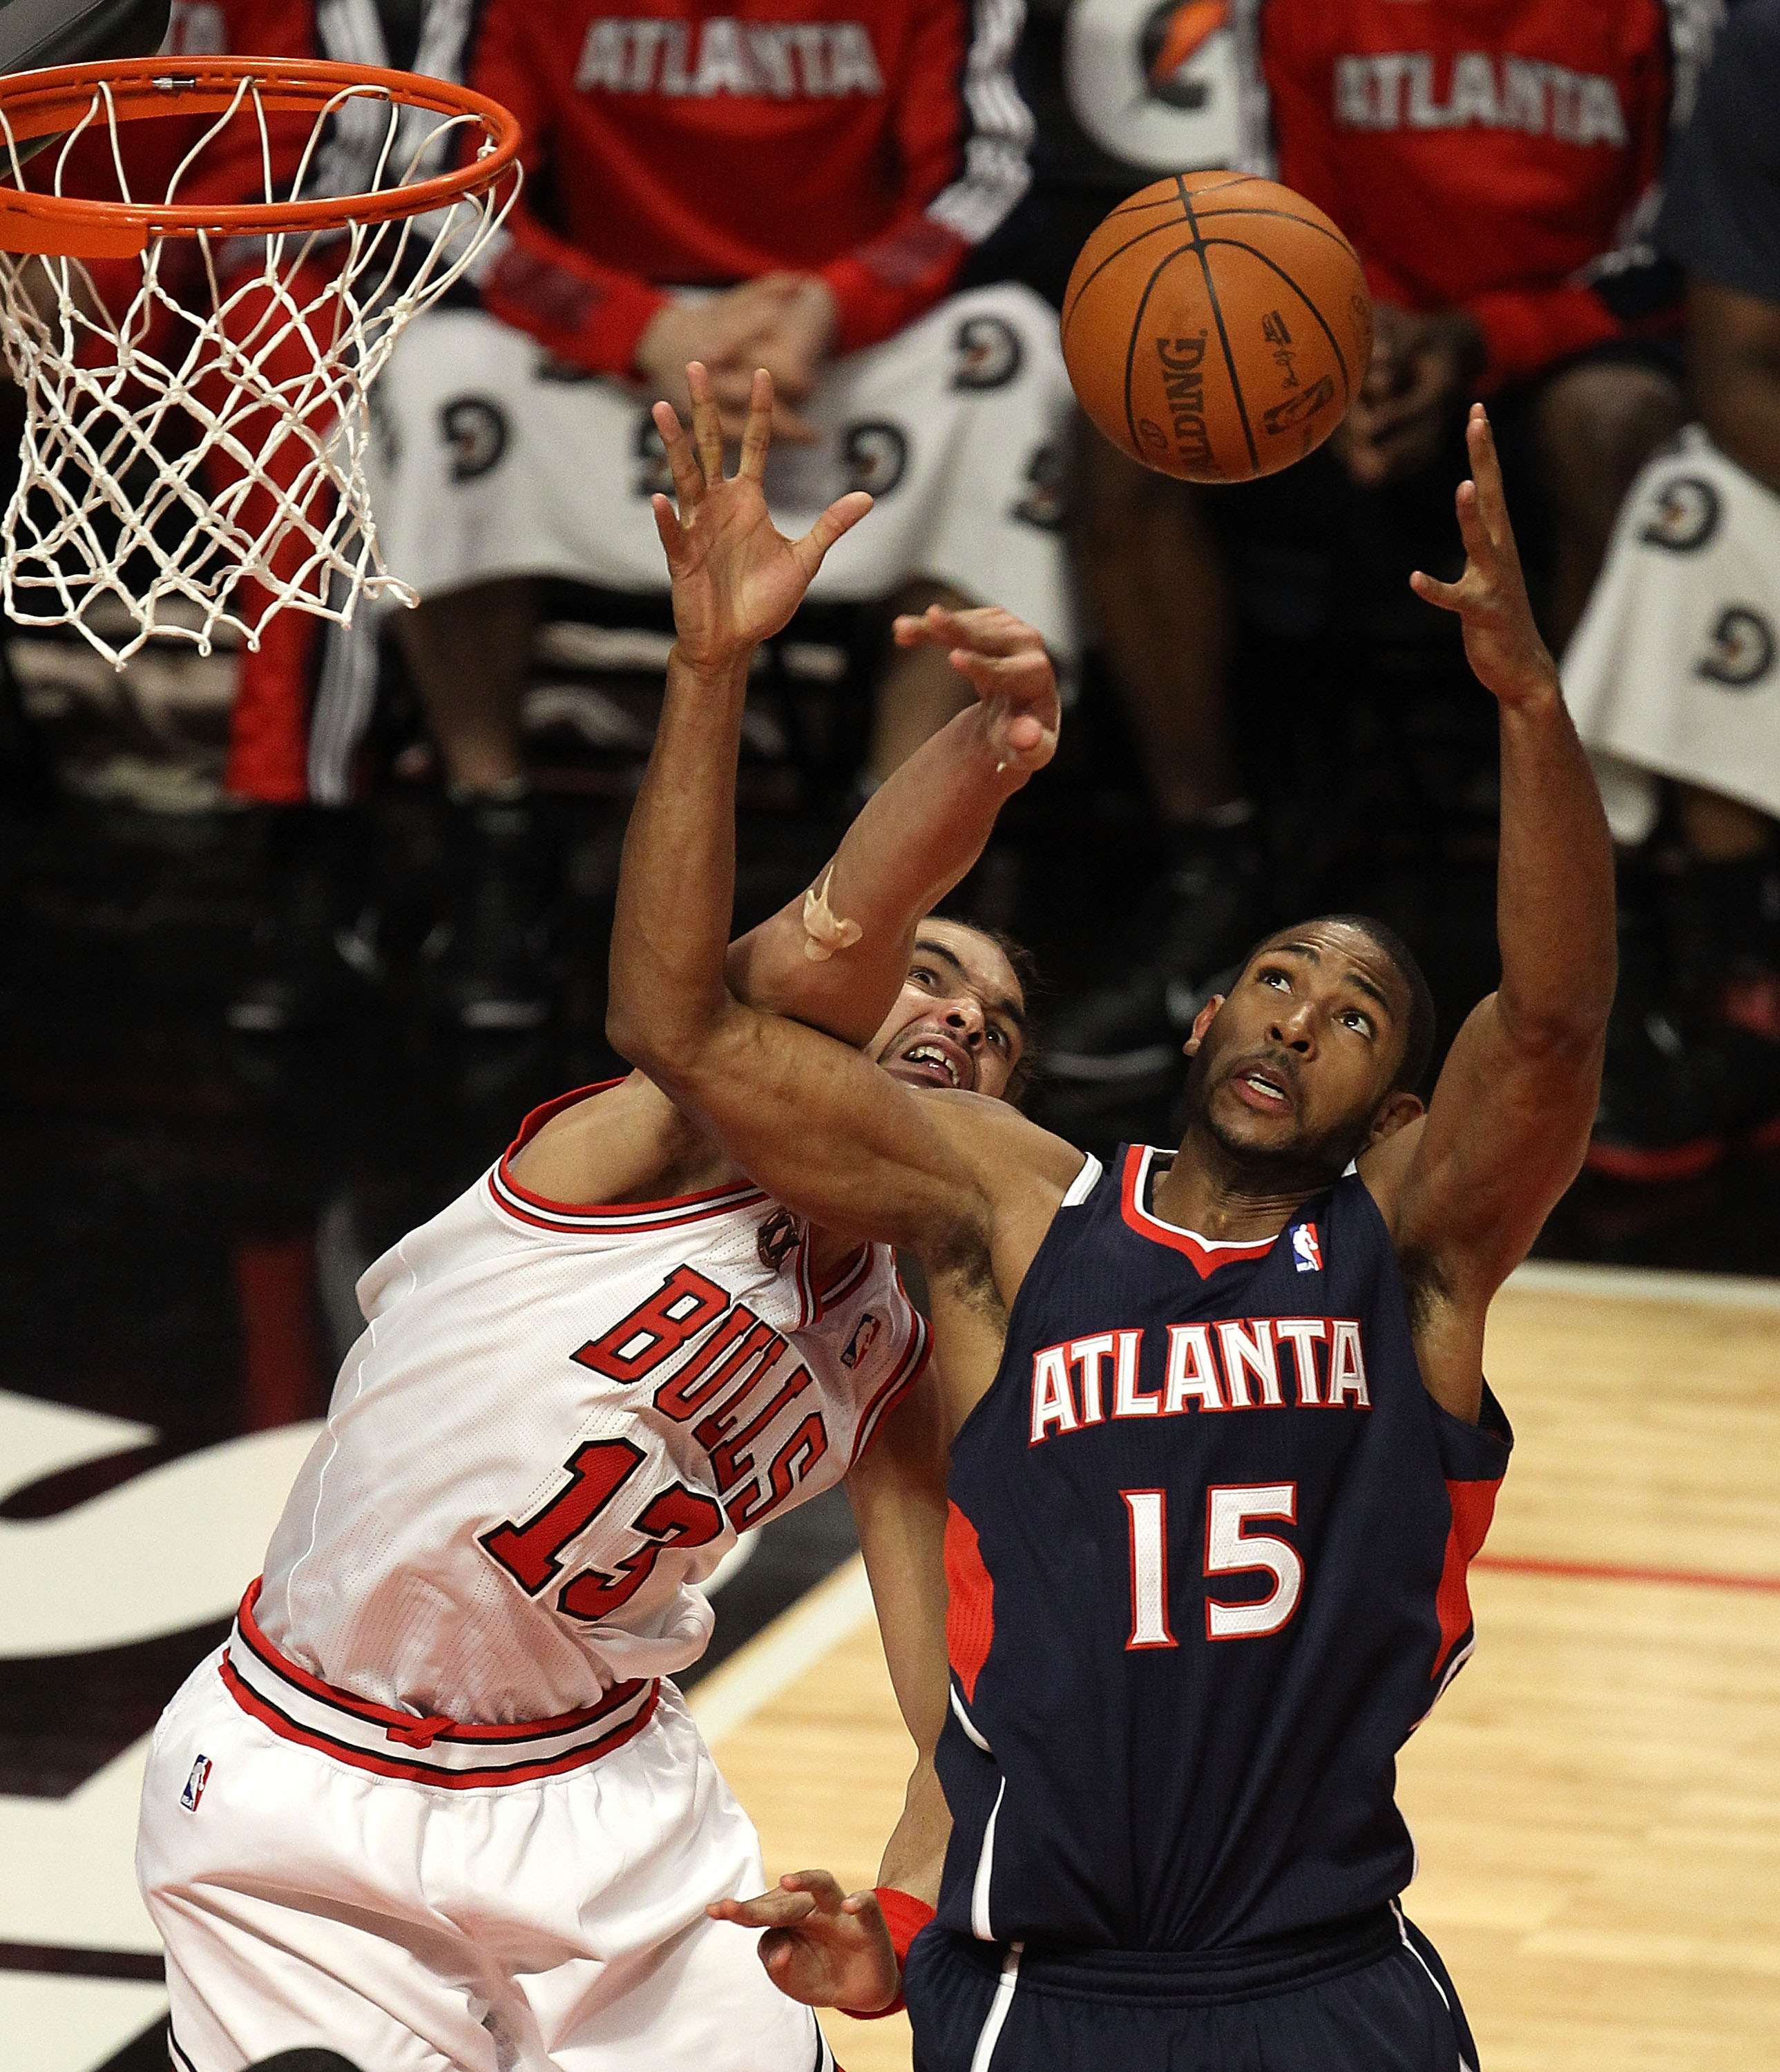 CHICAGO, IL - MARCH 11: Joakim Noah #13 of the Chicago Bulls knocks the ball away from Al Horford #15 of the Atlanta Hawks at the United Center on March 11, 2011 in Chicago, Illinois. The Bulls defeated the Hawks 94-76. NOTE TO USER: User expressly acknow